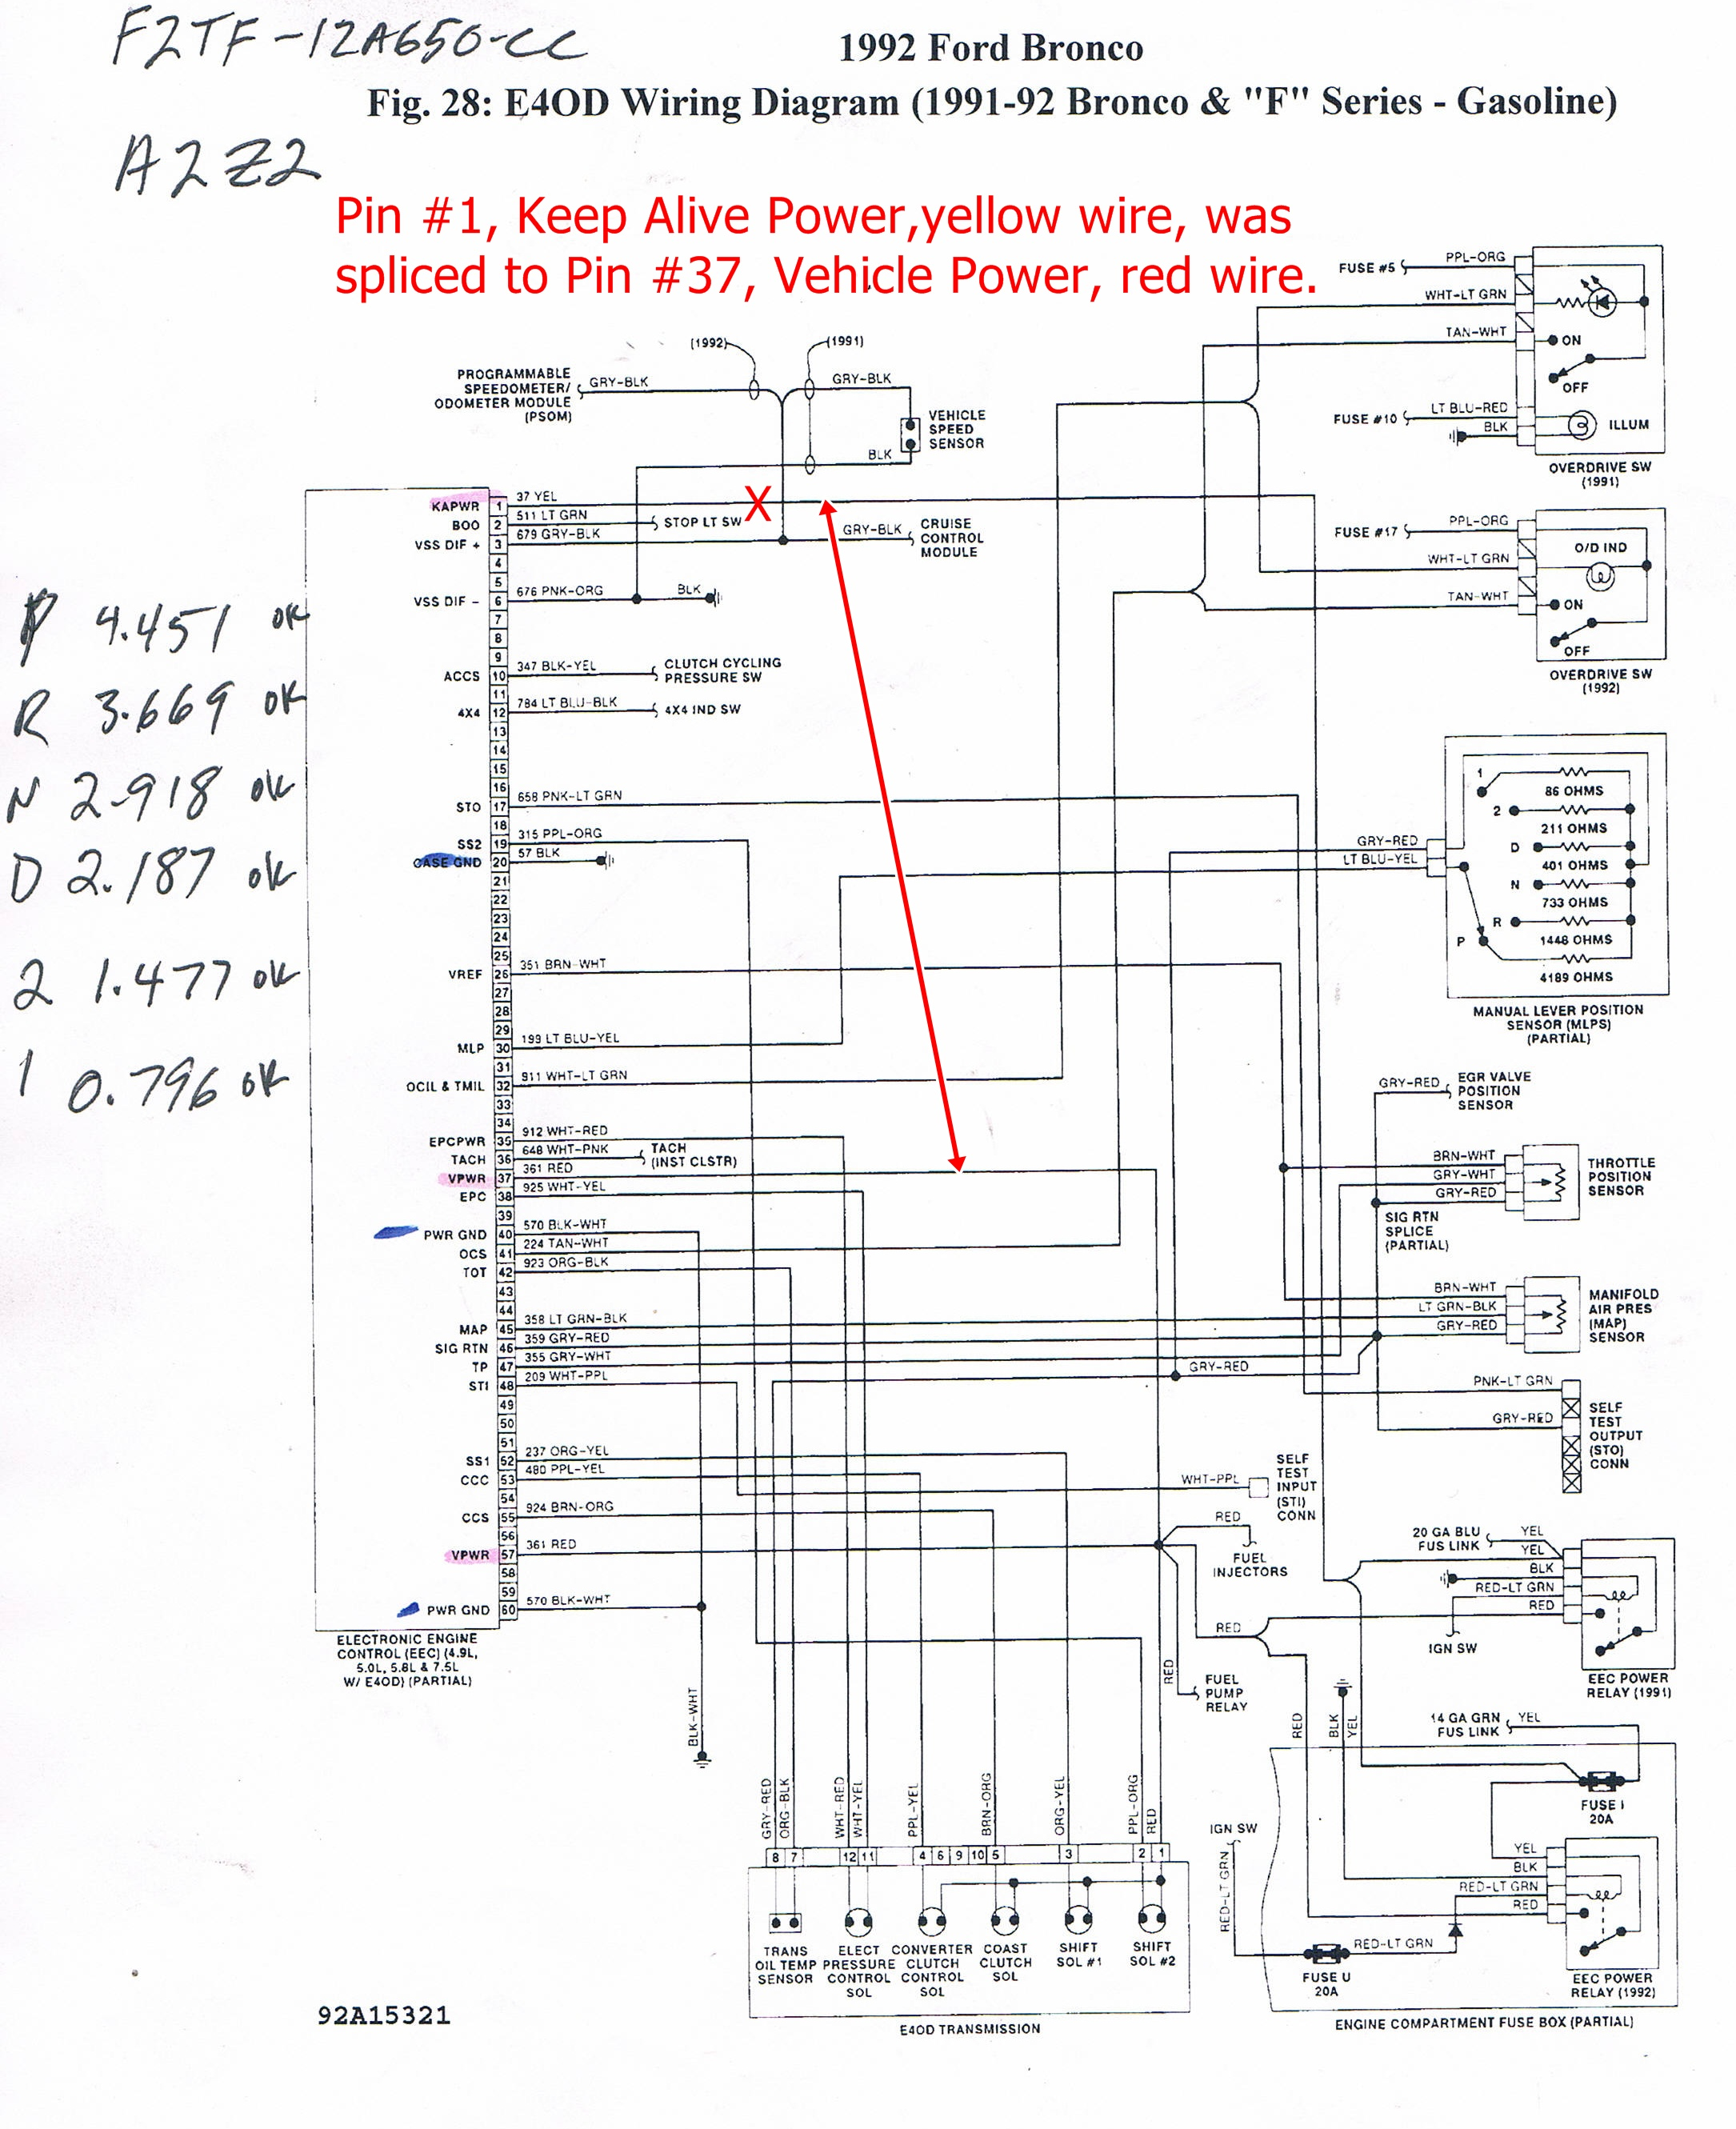 1995 Kodiak C8500 Wiring Diagram - wiring diagram manual